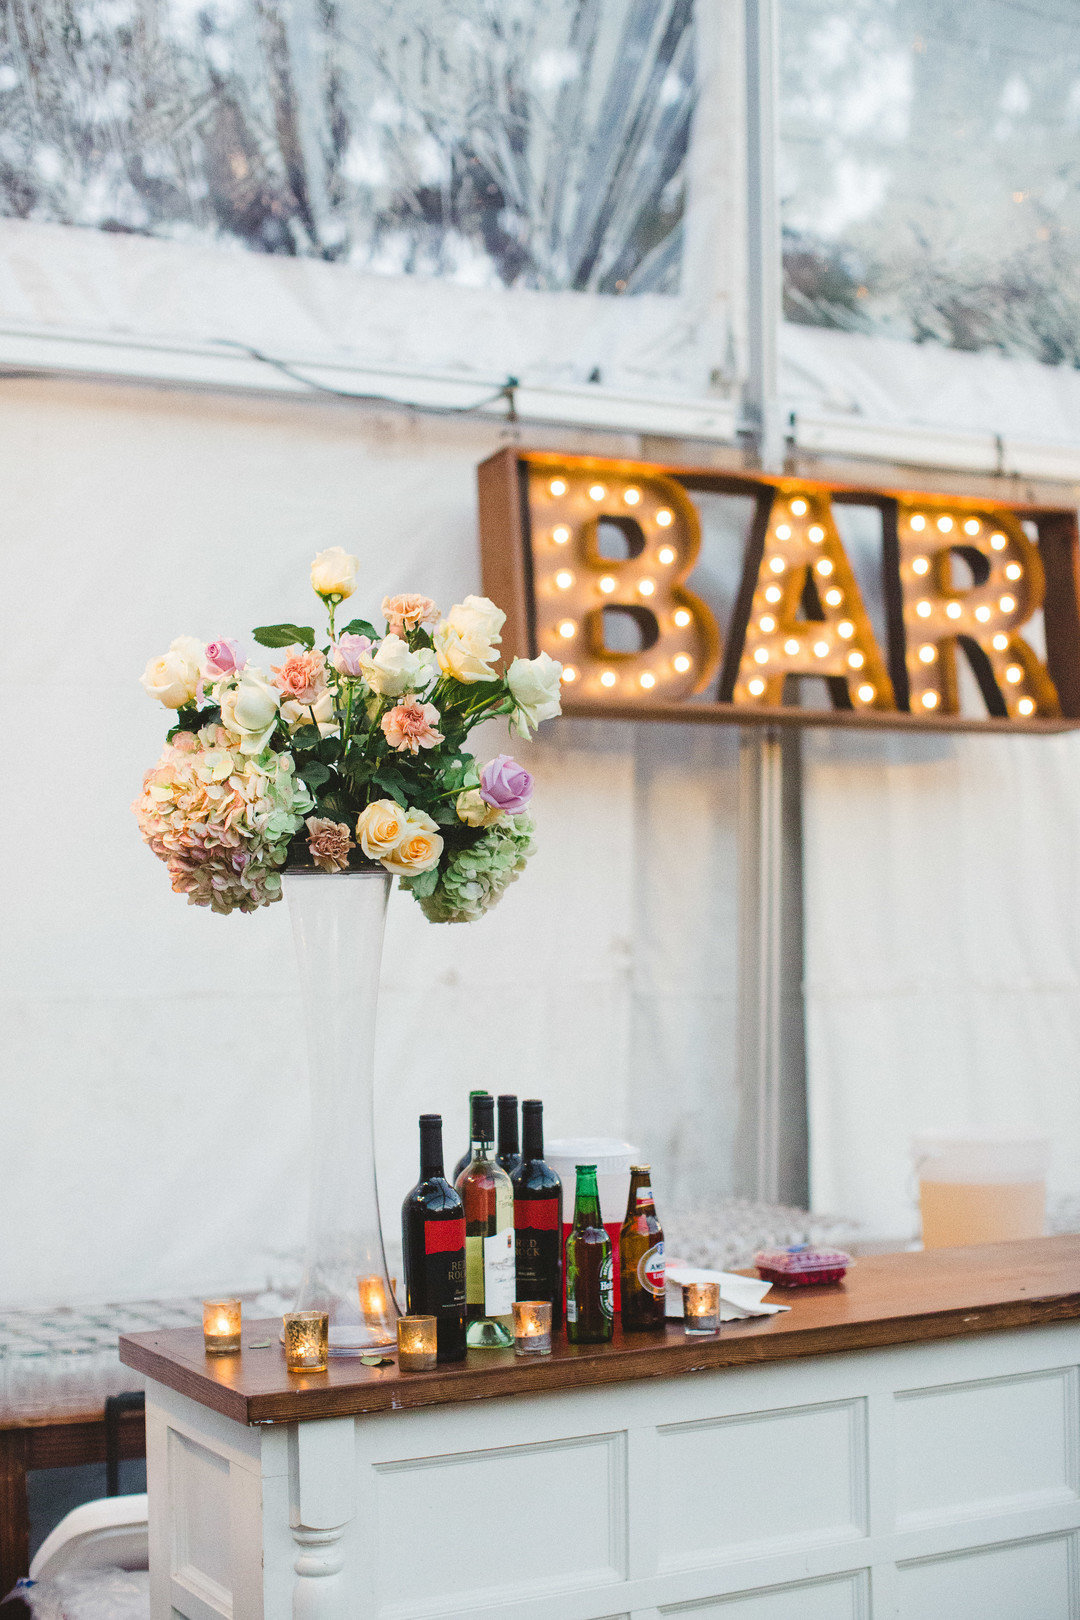 A white vintage bar with flowers and bottles on top.